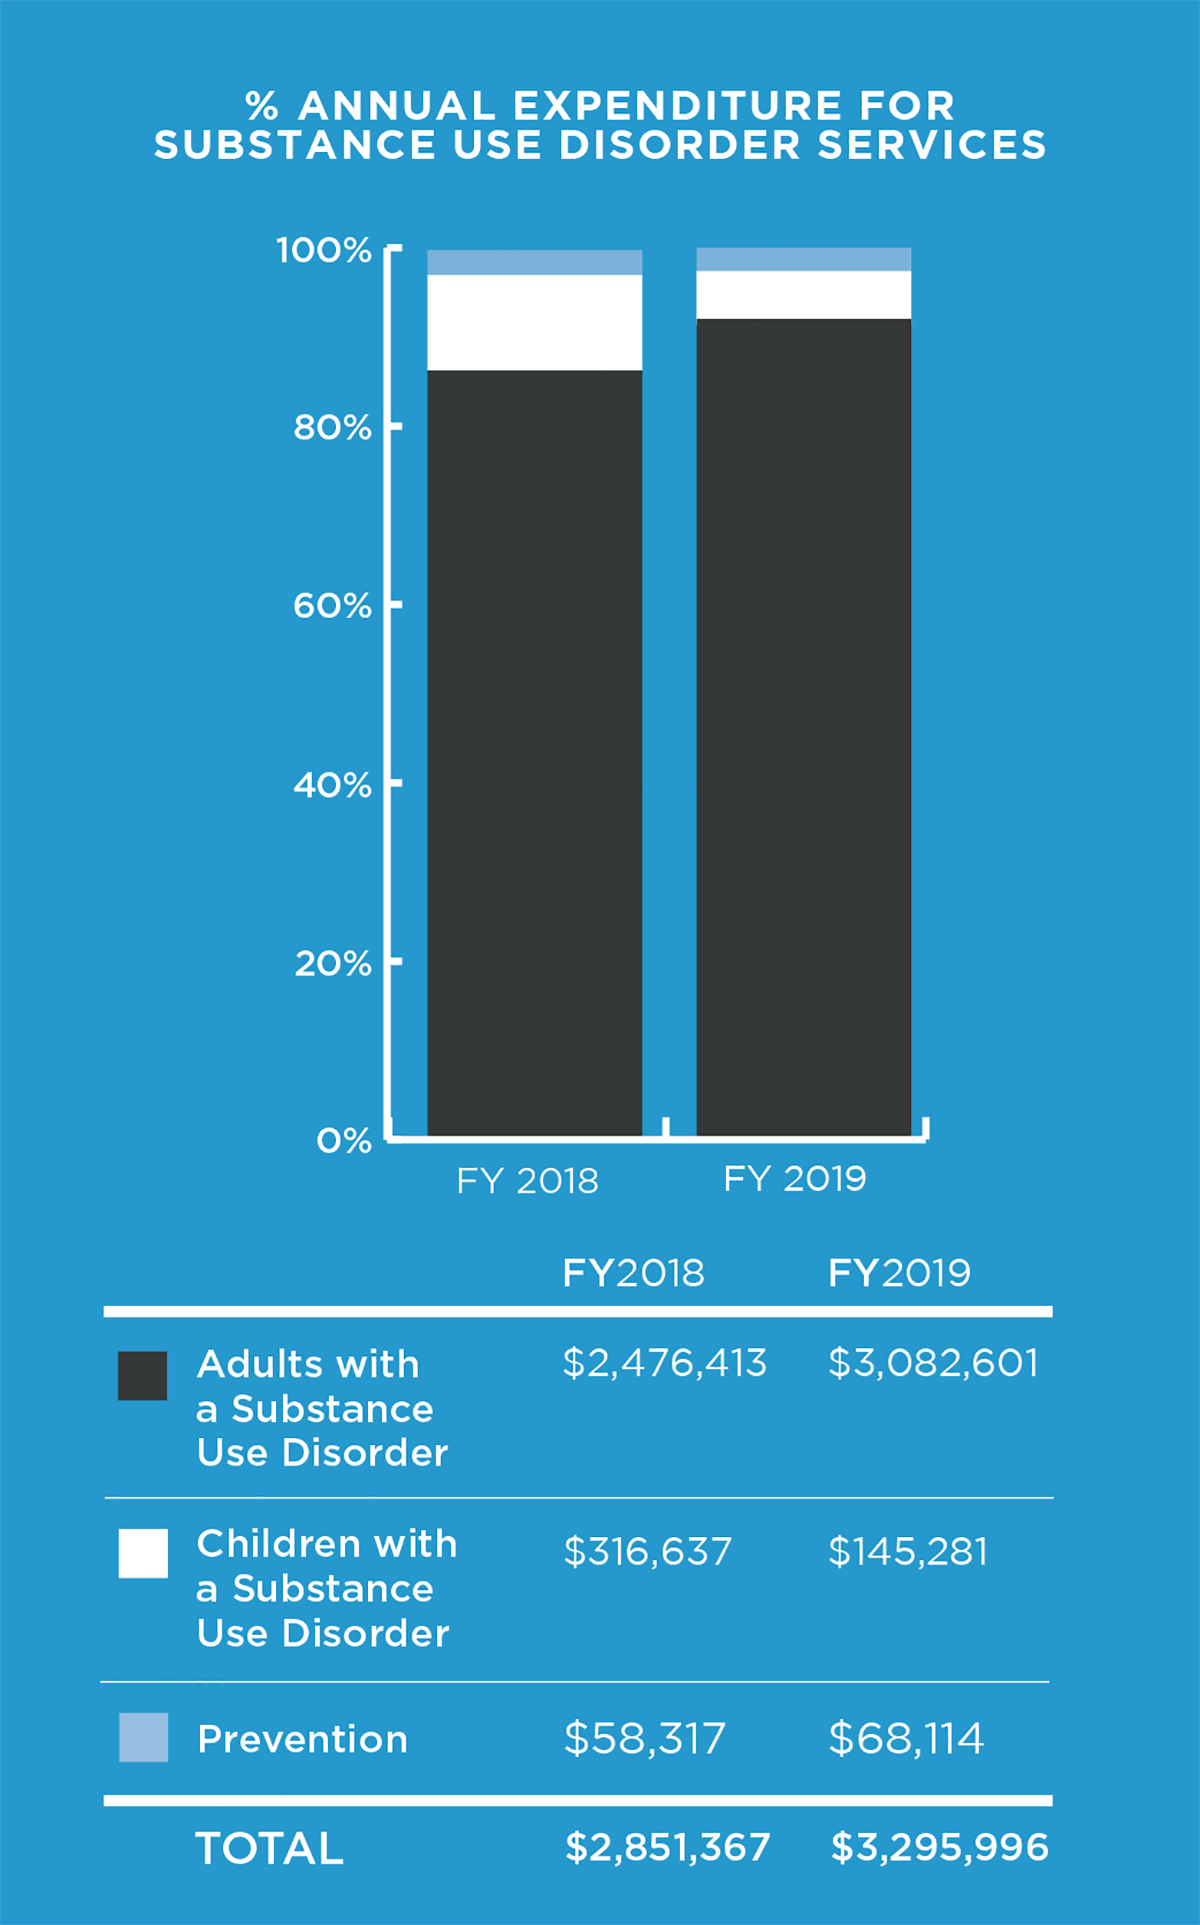 % Annual Expenditure for Substance Use Disorder Services